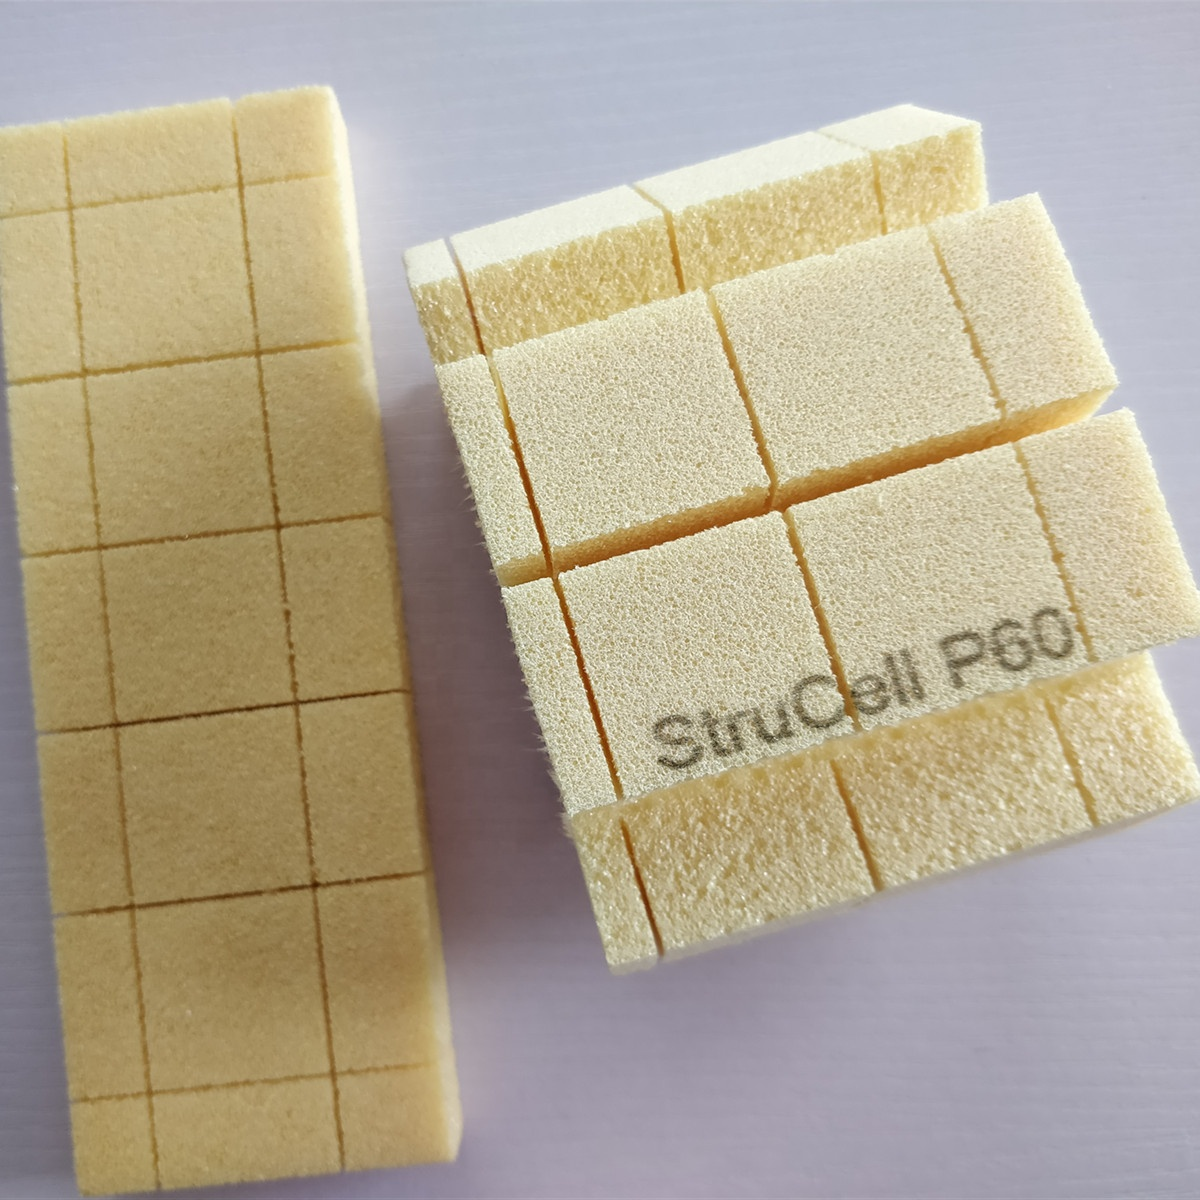 Closed Cell Cross-linked Structural <strong>PVC</strong> Foam Core Sheet Board for Boat /Yacht/ship FPR Manufacturing